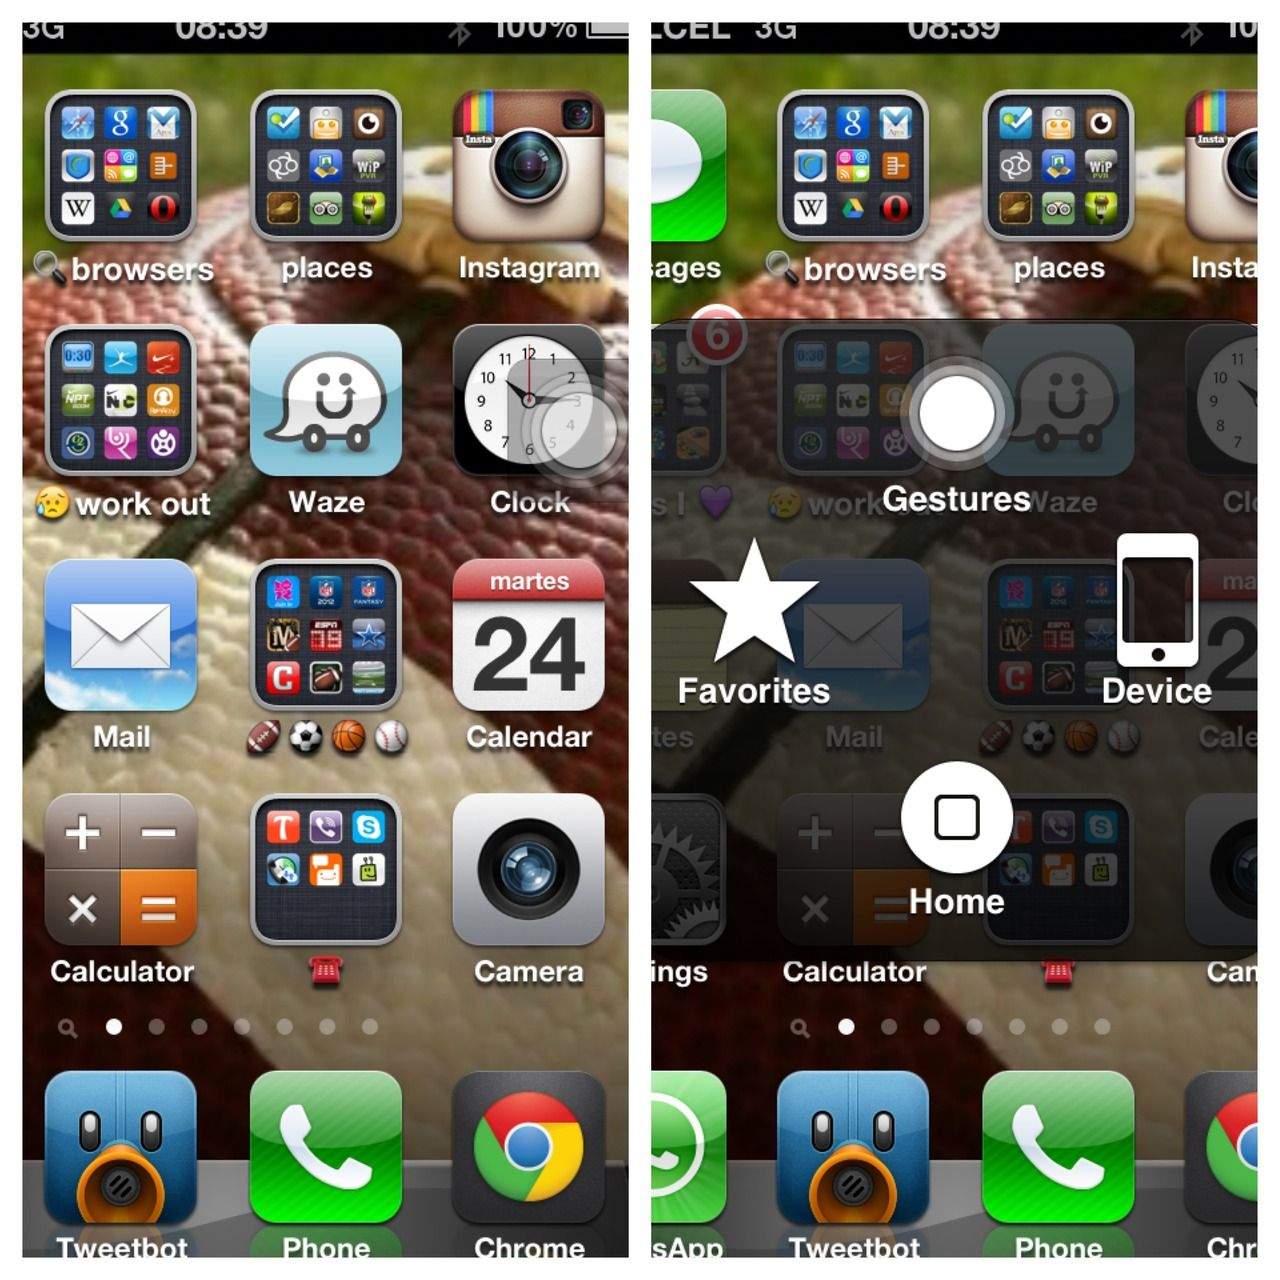 How To Get The On Screen Home Button For Iphone